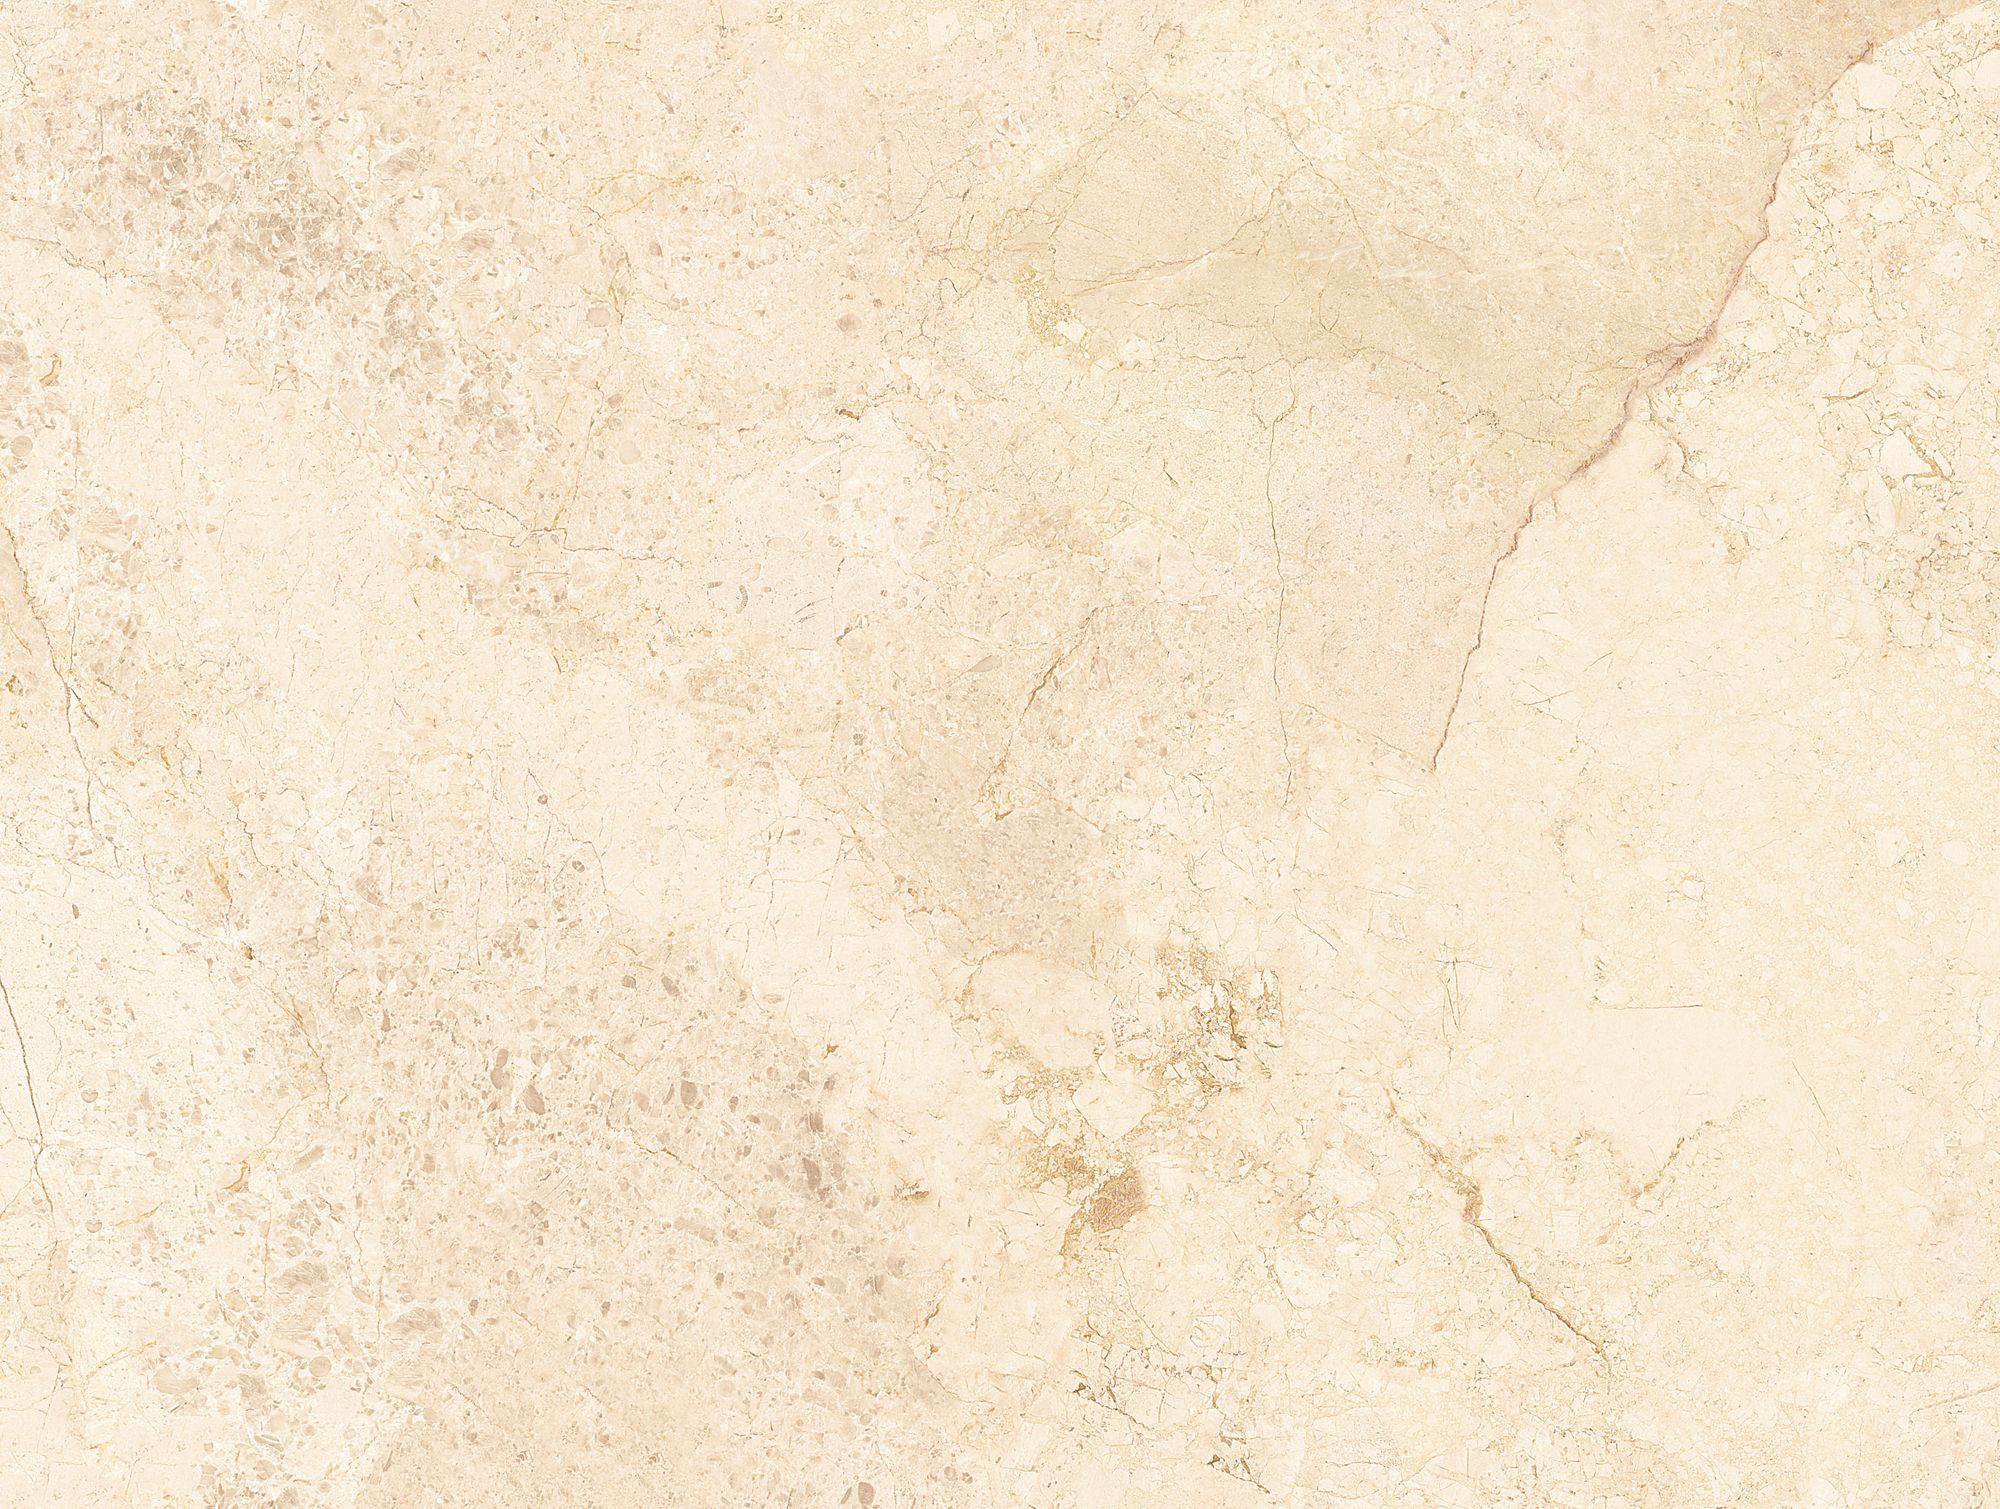 Purity Latte Marble Marble Effect Ceramic Wall Floor Tile Pack Of 10